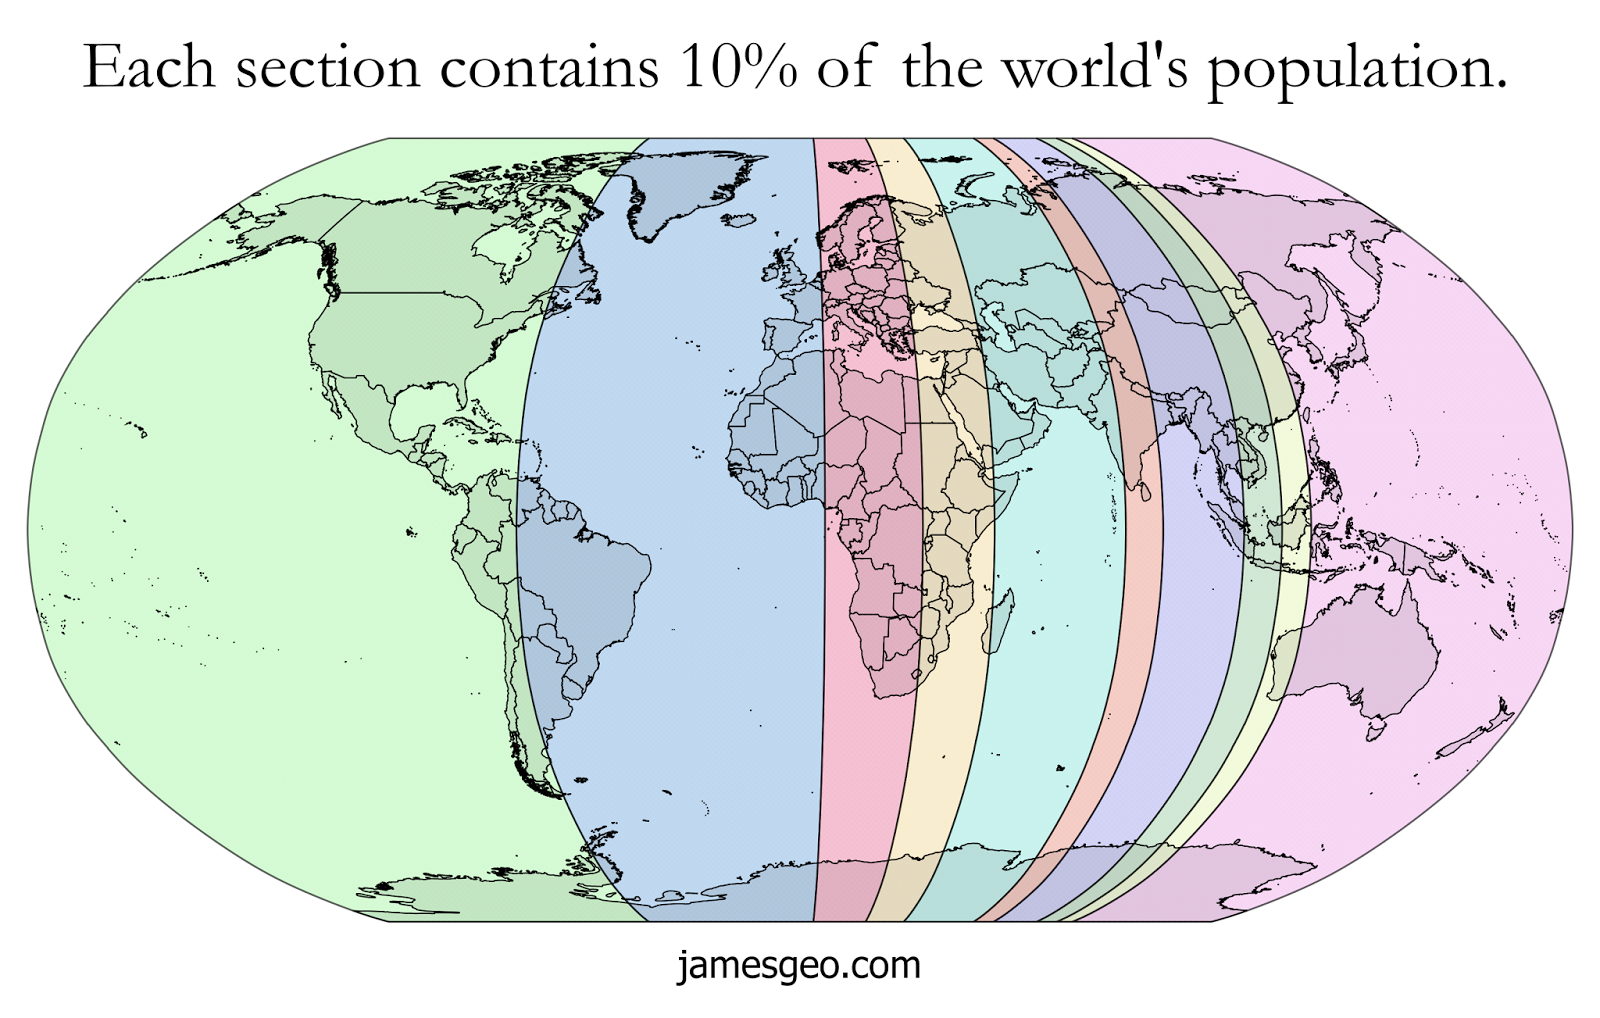 The World split into 10 sections, each section containing 10% of the world's population